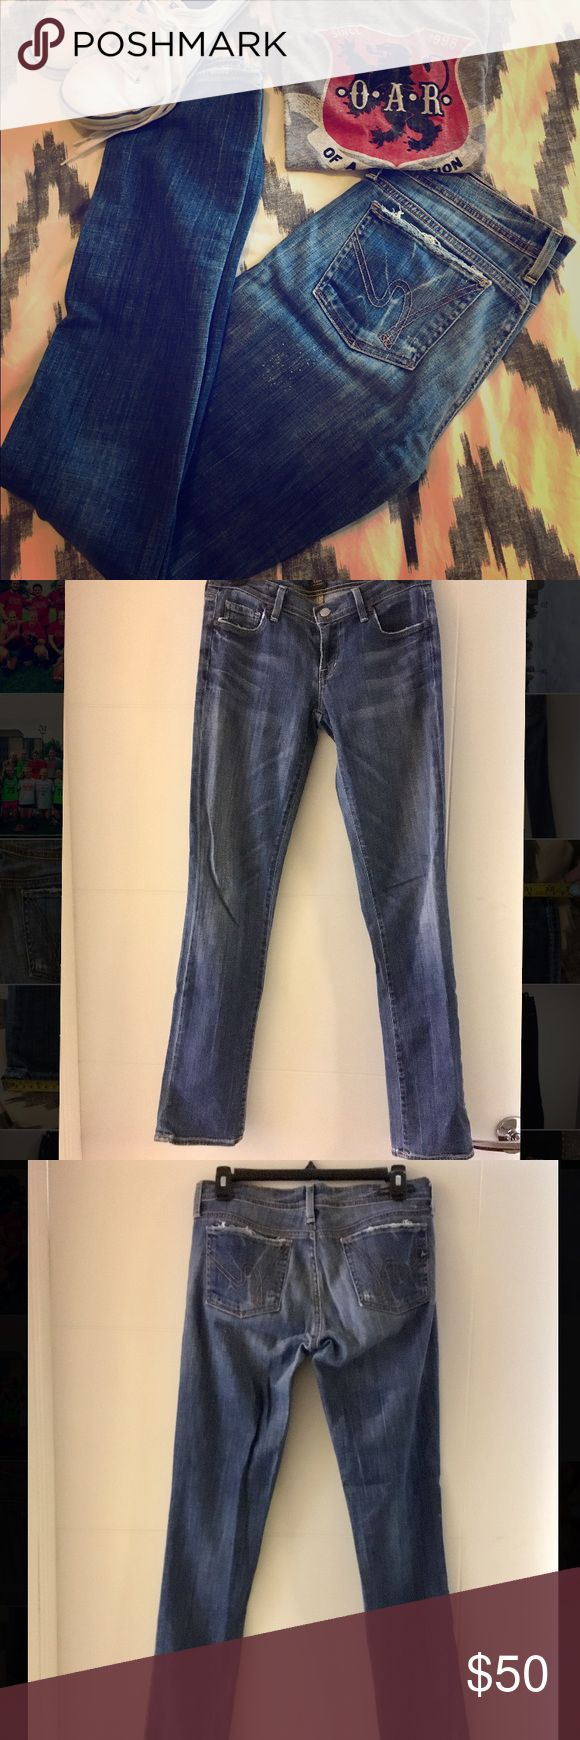 """Citizens of Humanity Bootcut Straight Leg Jeans Great classic pair of jeans! Worn but in great condition. Some distressing on pockets and thighs (by design). 32"""" in seam, 6.5"""" ankle opening. Low rise but not super low. Size 28! Let me know if you have any questions! Citizens of Humanity Jeans Straight Leg"""